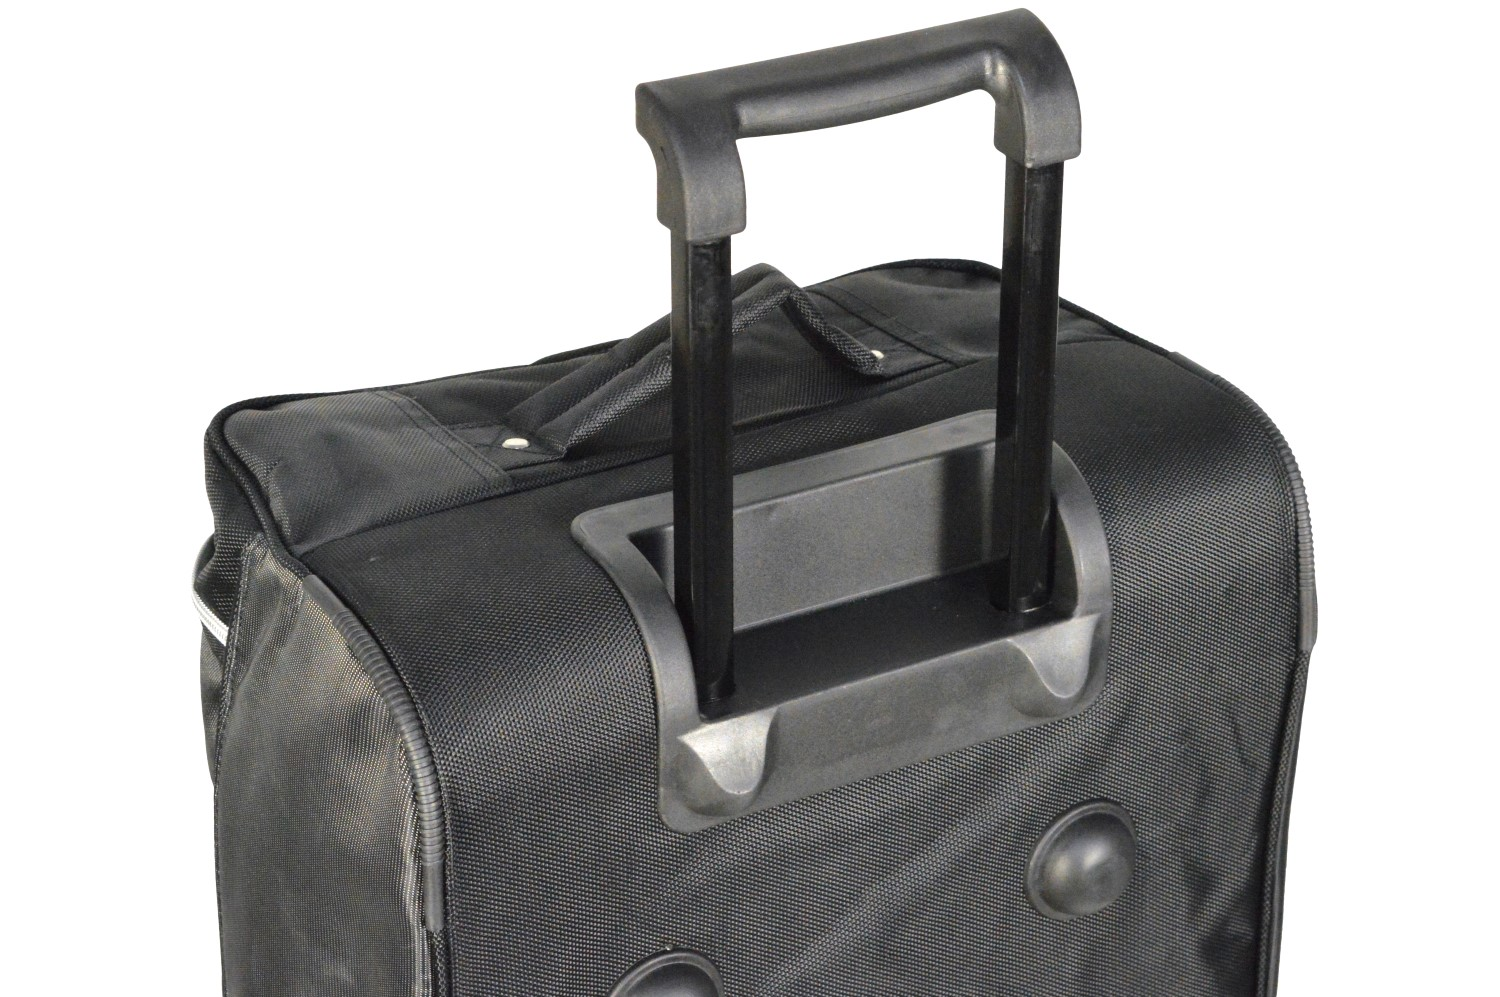 Each trolley bag is equipped with a practical and sturdy telescoping handle